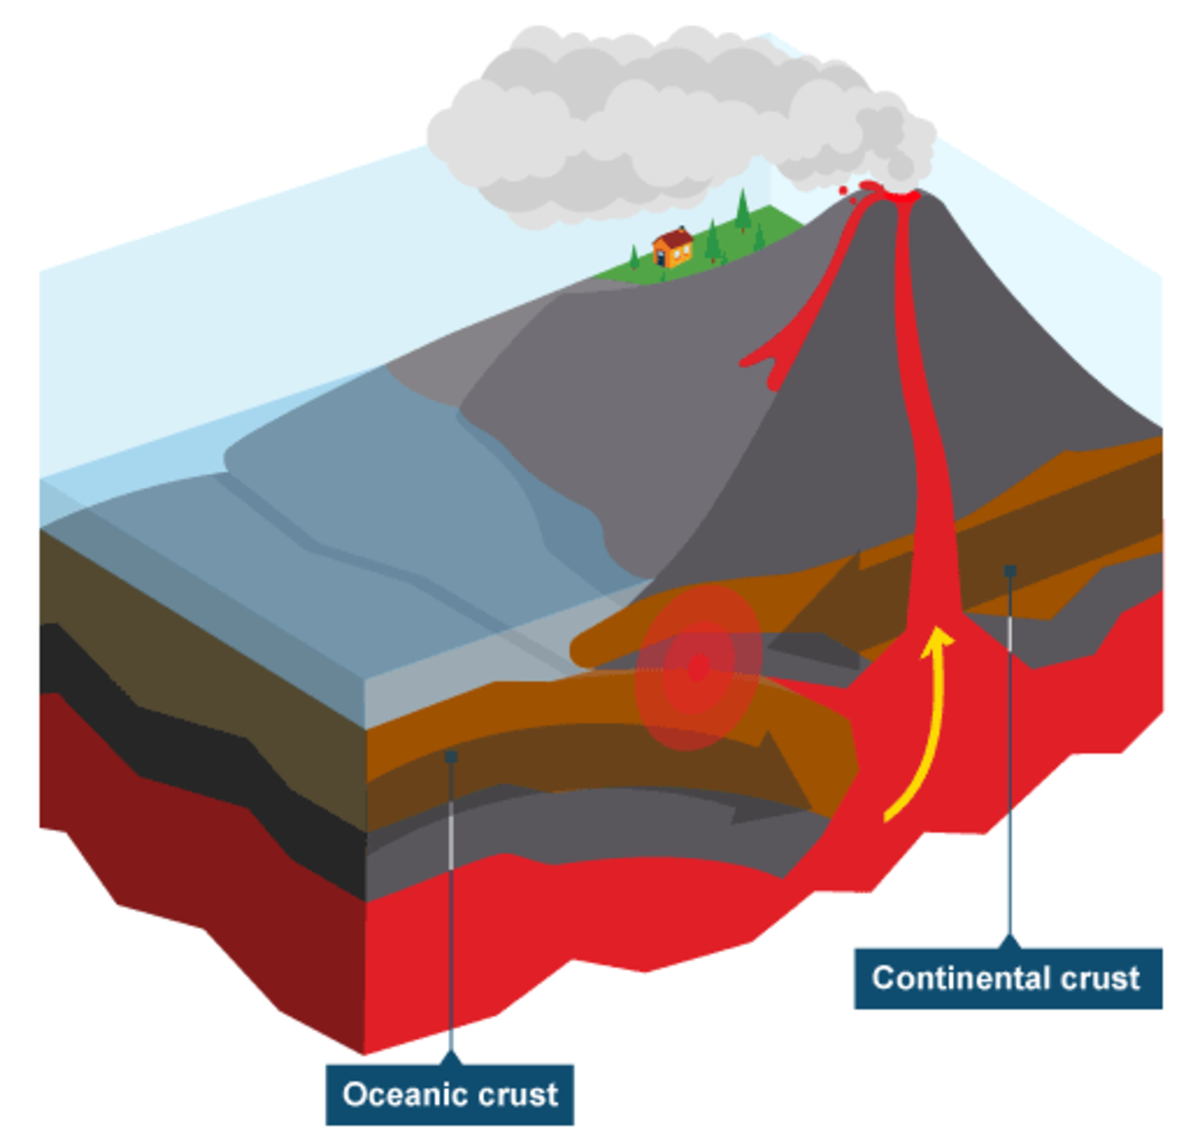 Oceanic plate meets continental plate